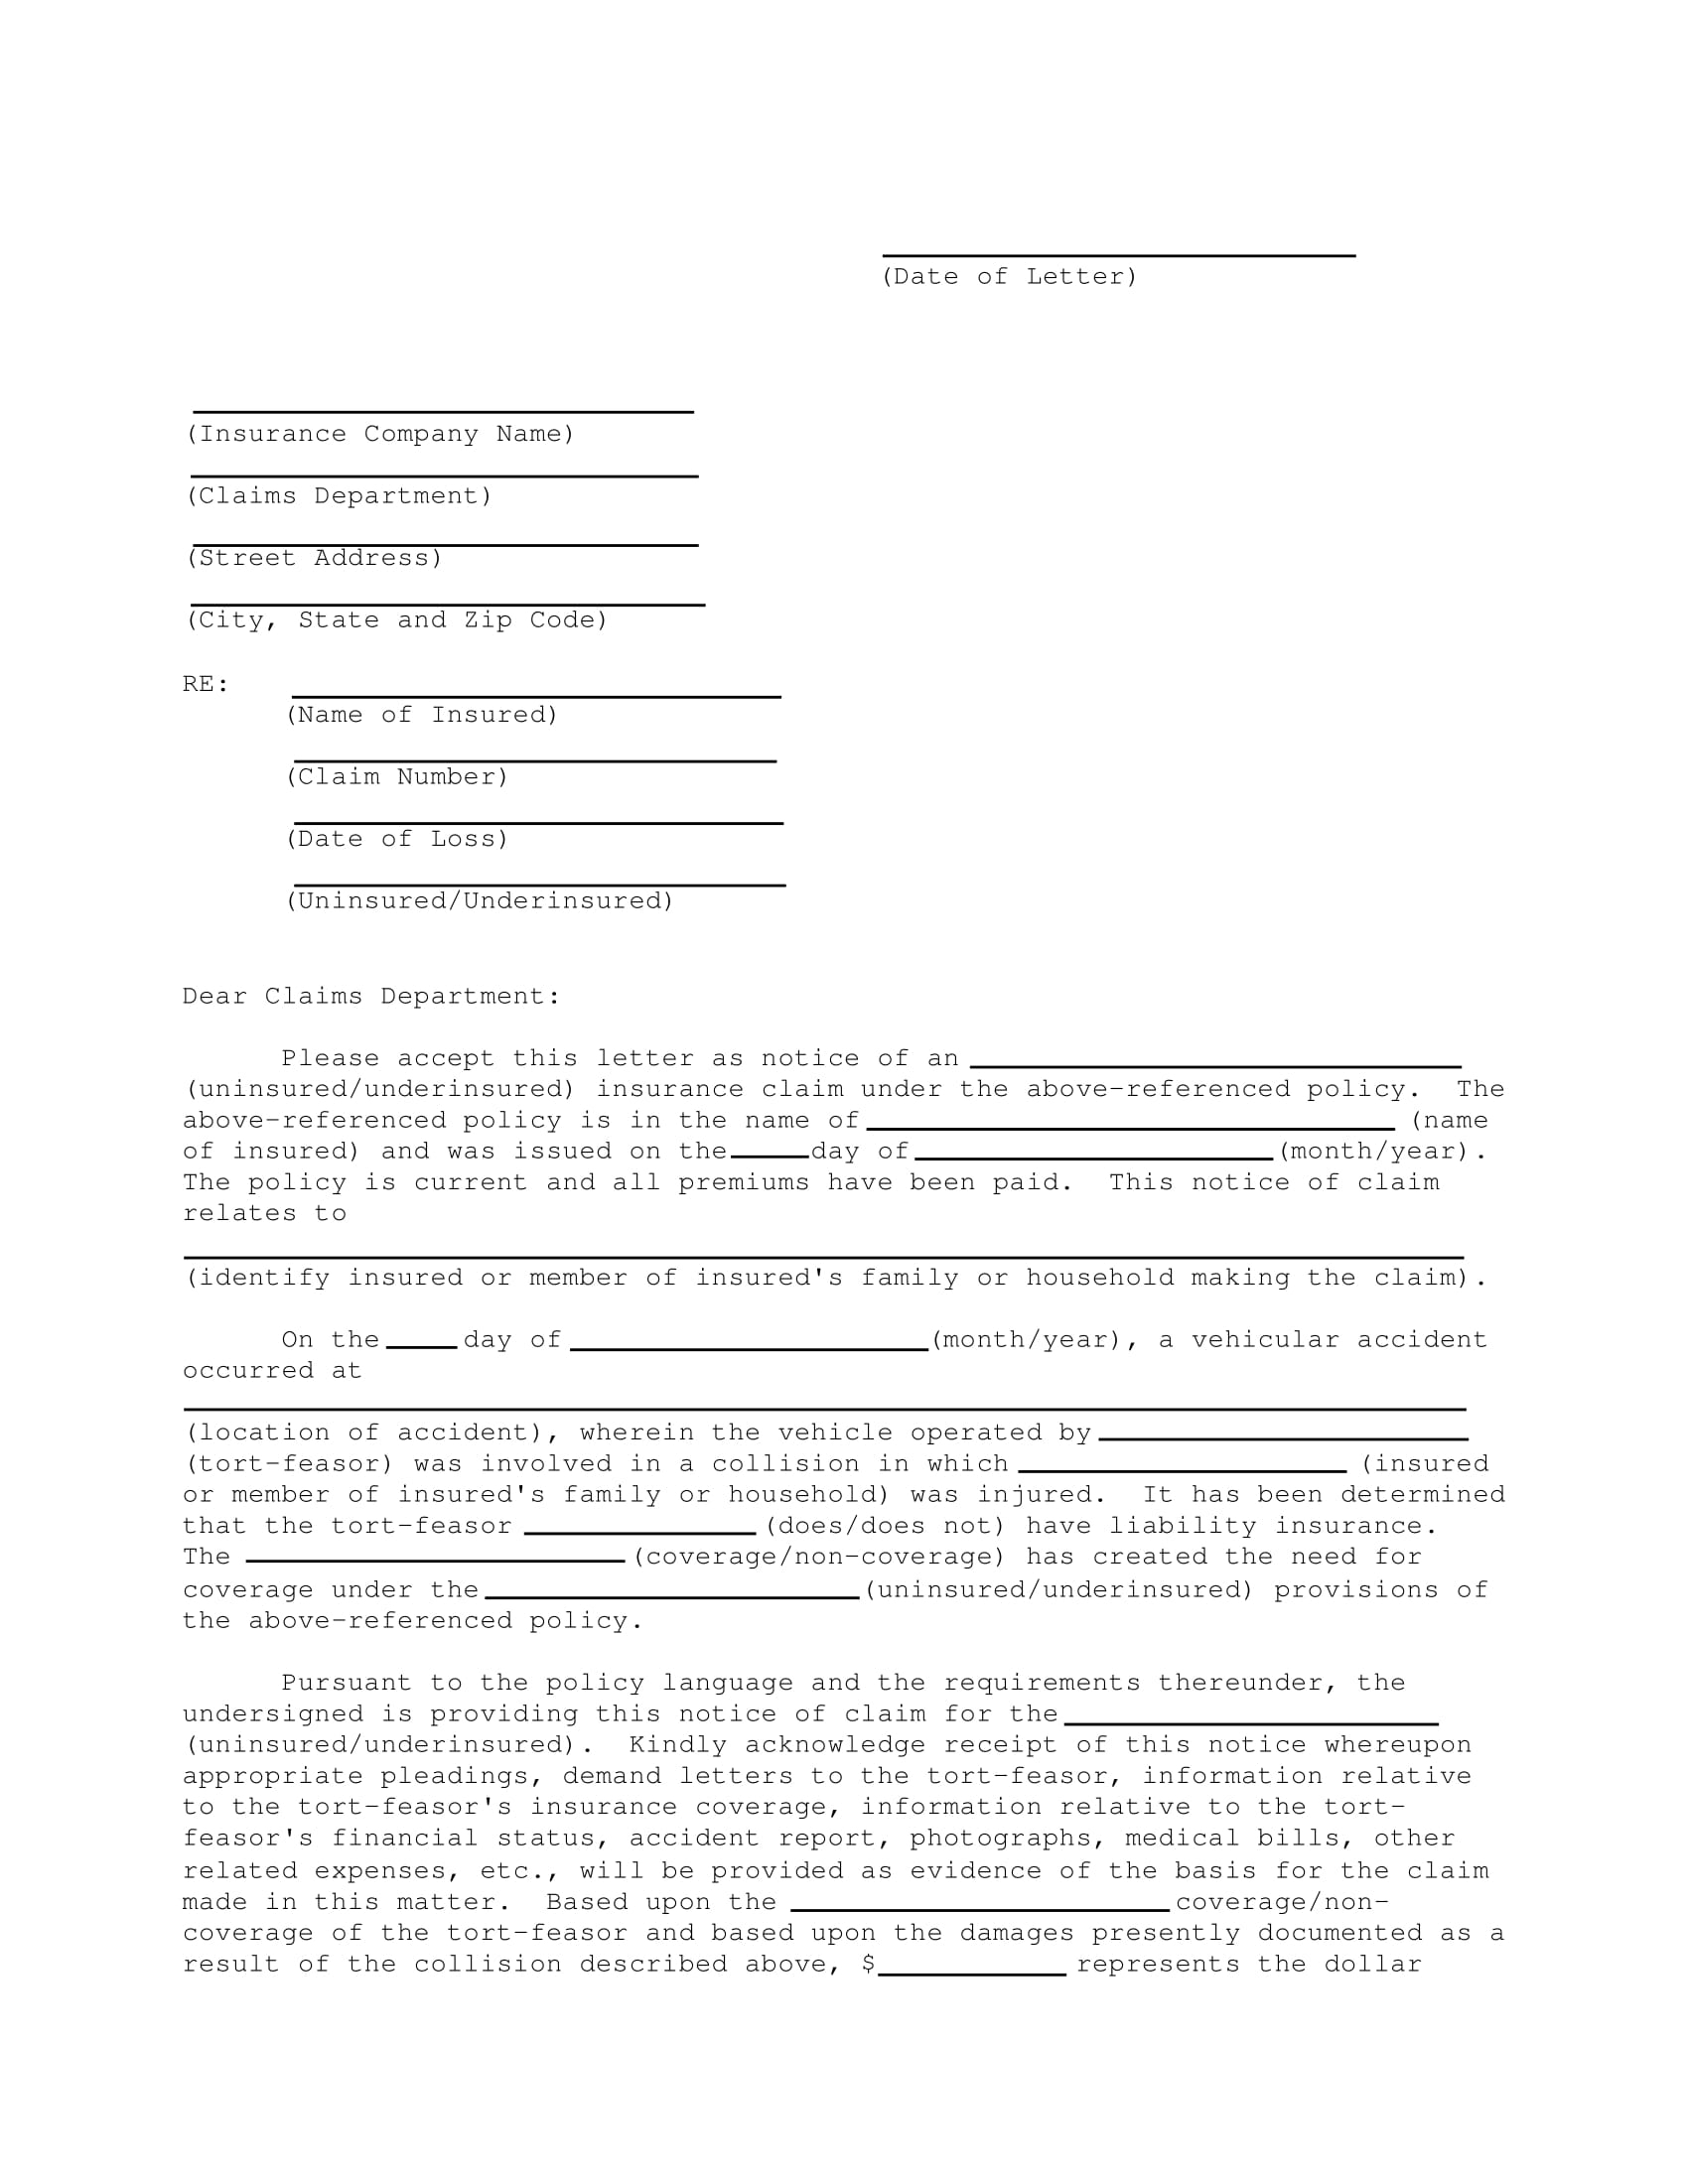 claim letter example 1